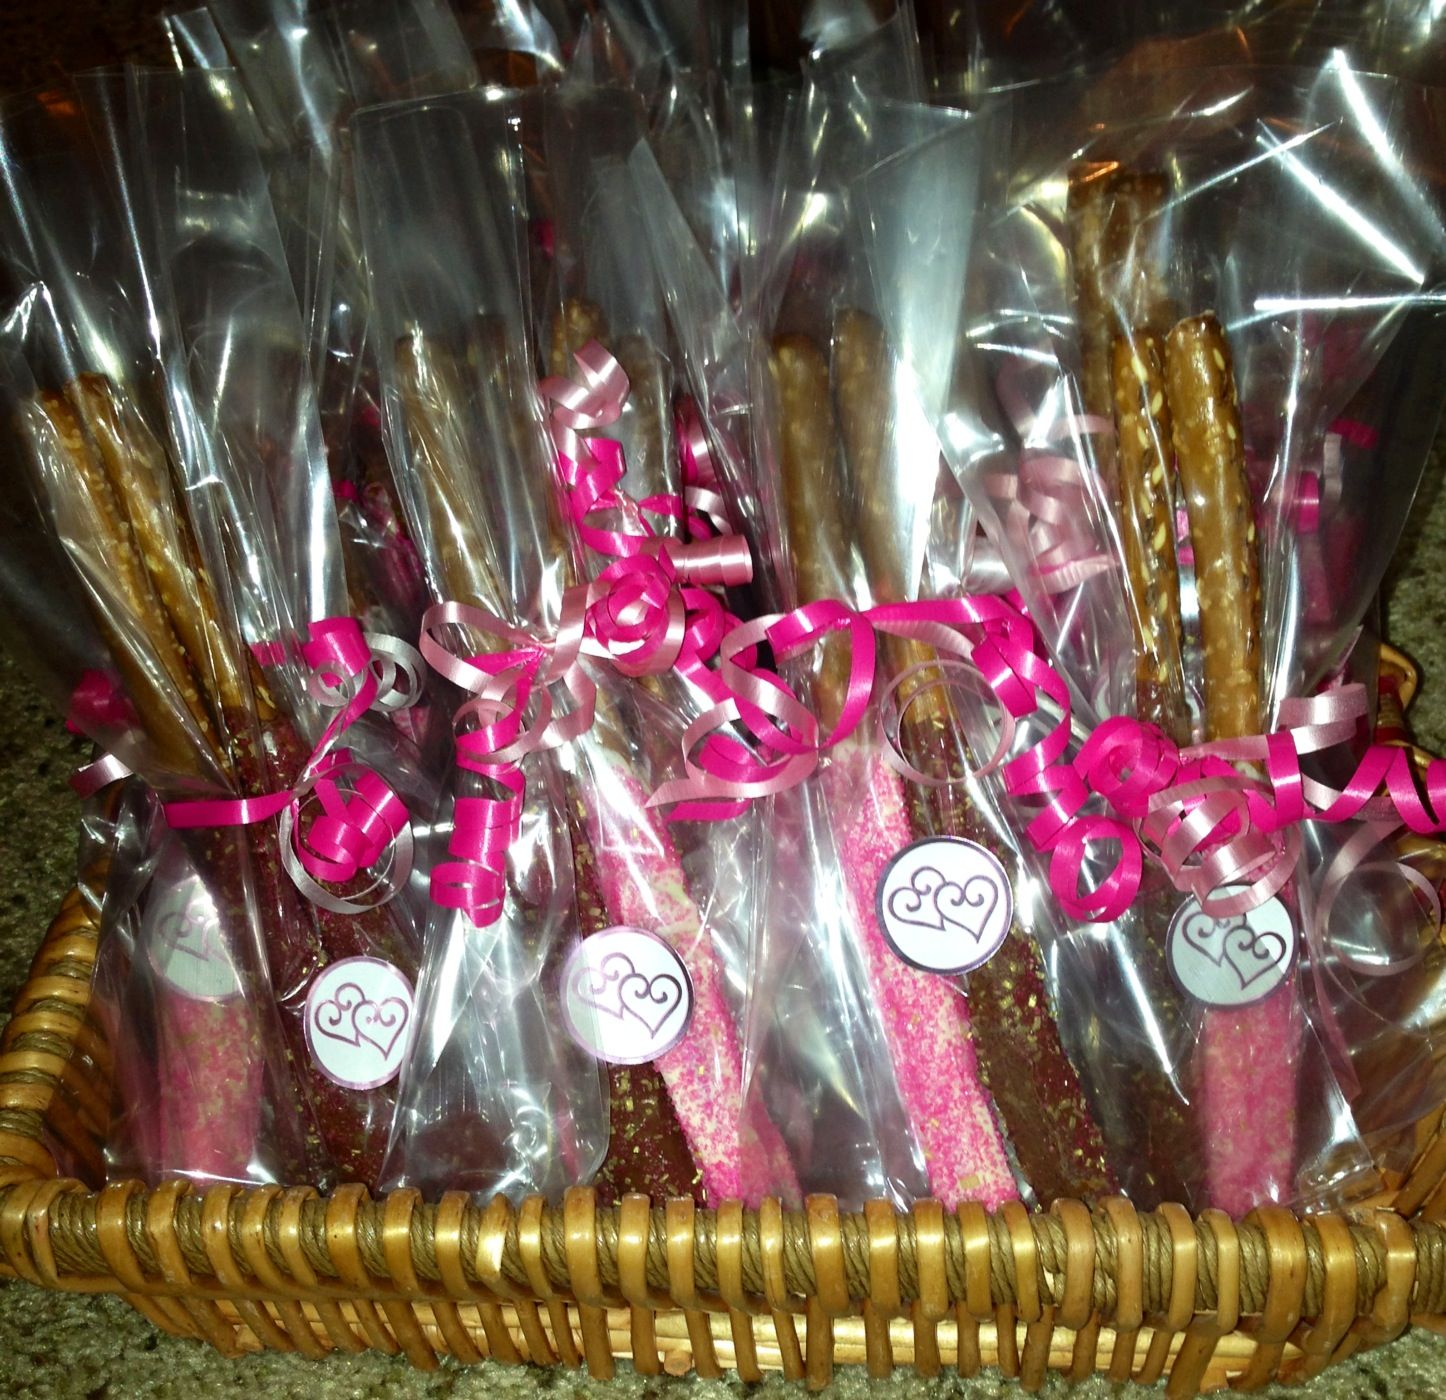 Bridal shower favors: DIY chocolate dipped pretzel sticks | Cute ...